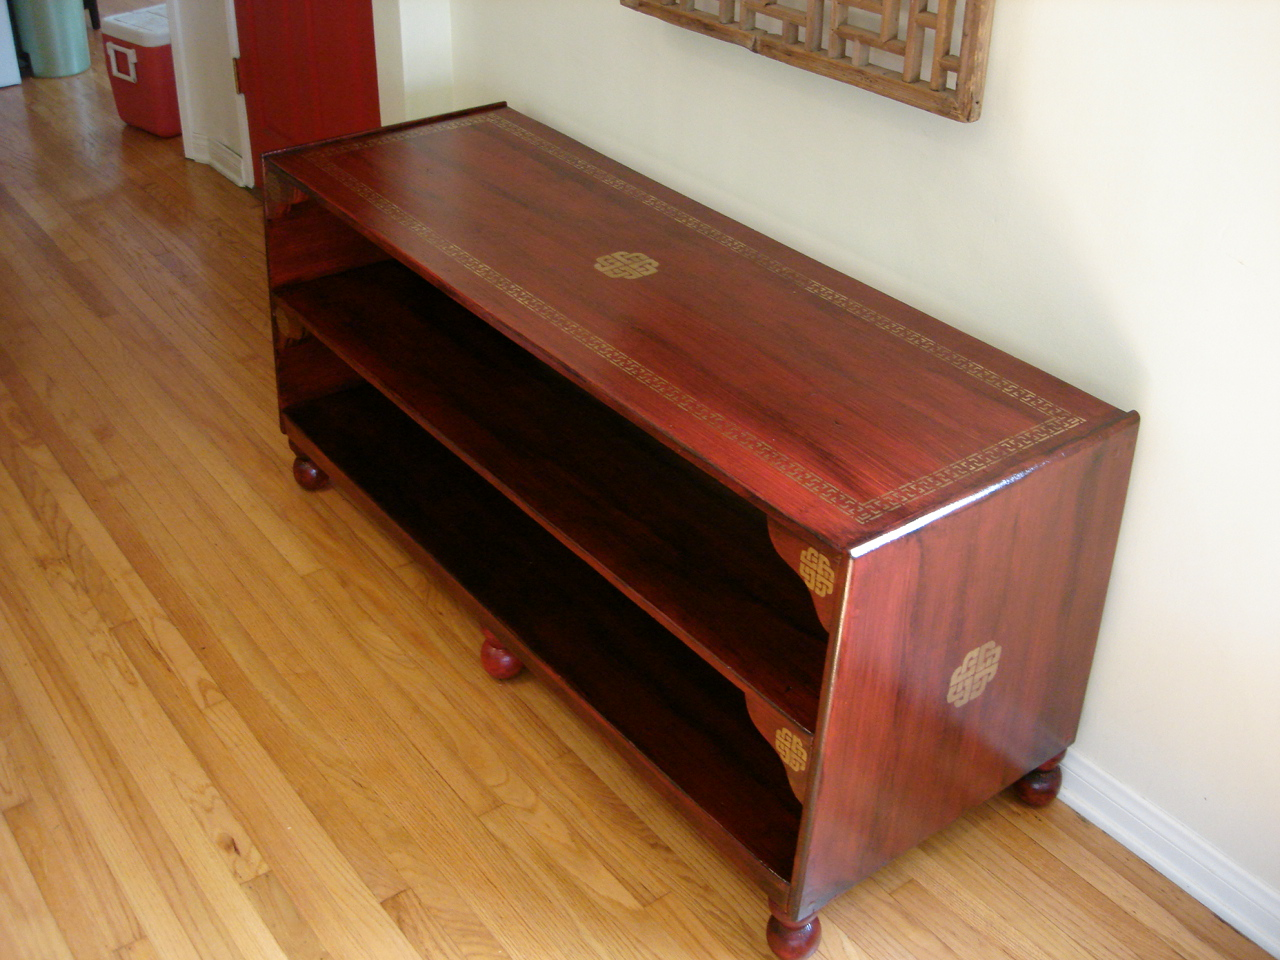 Chinese_Red_Lacquer_Shelf.jpg